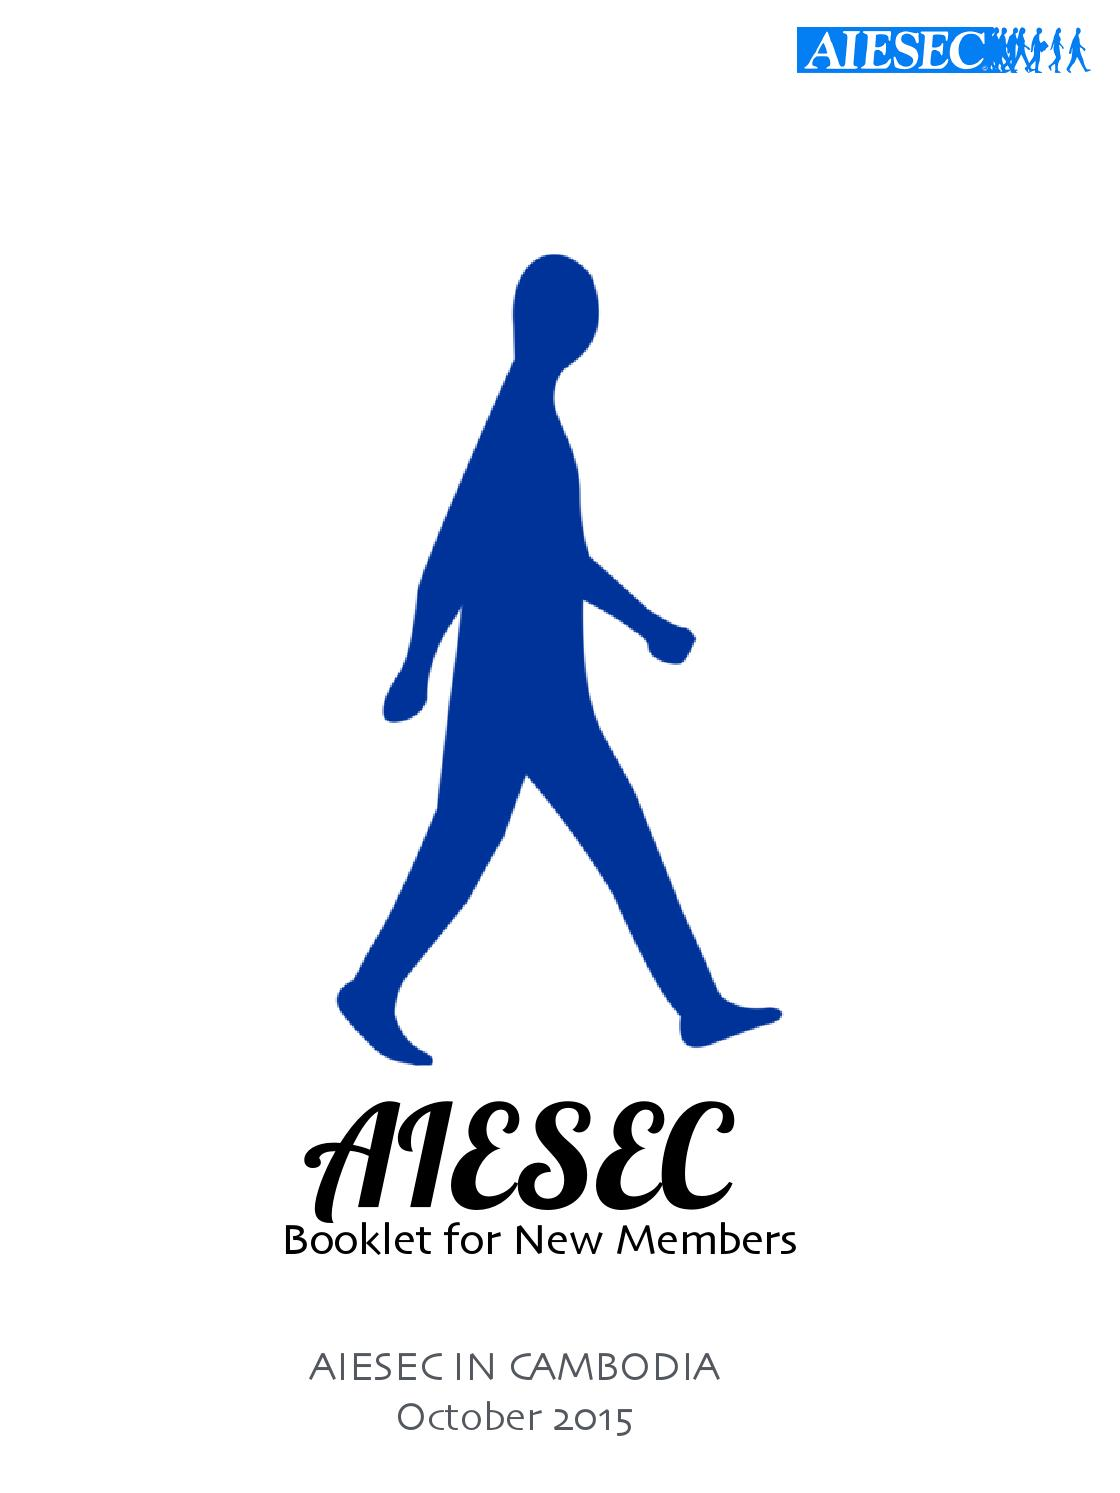 AIESEC-Booklet-for-New-Members-wallpaper-wp3402213